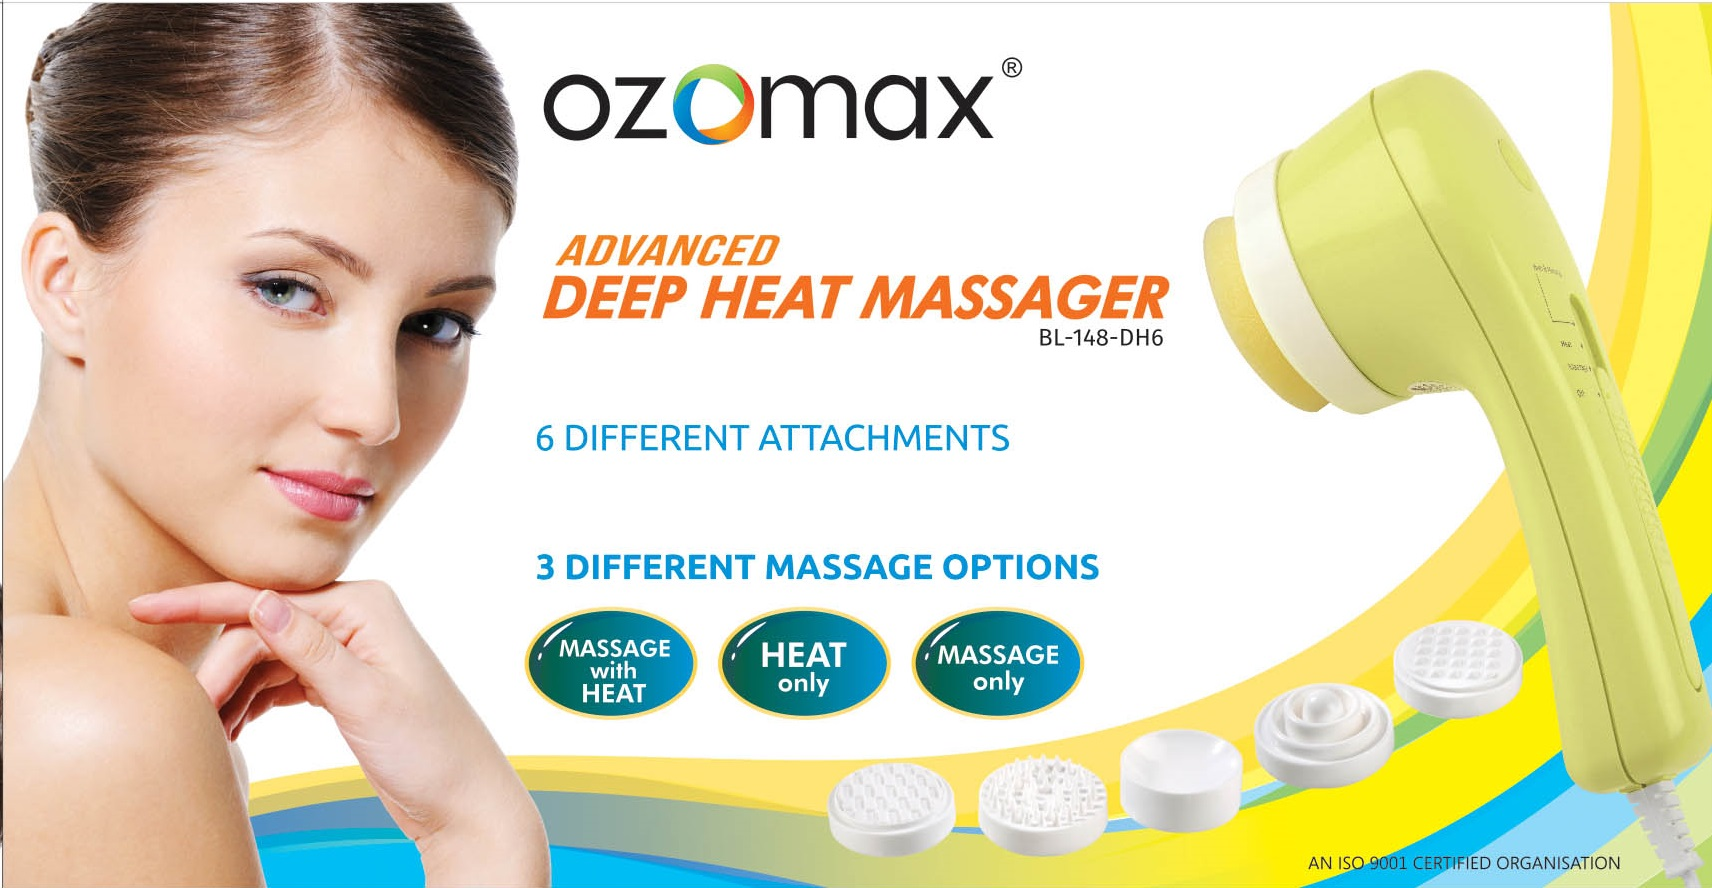 OZOMAX DEEP HEAT MASSAGE APPARATUS WITH 6 ATTACHMENTS